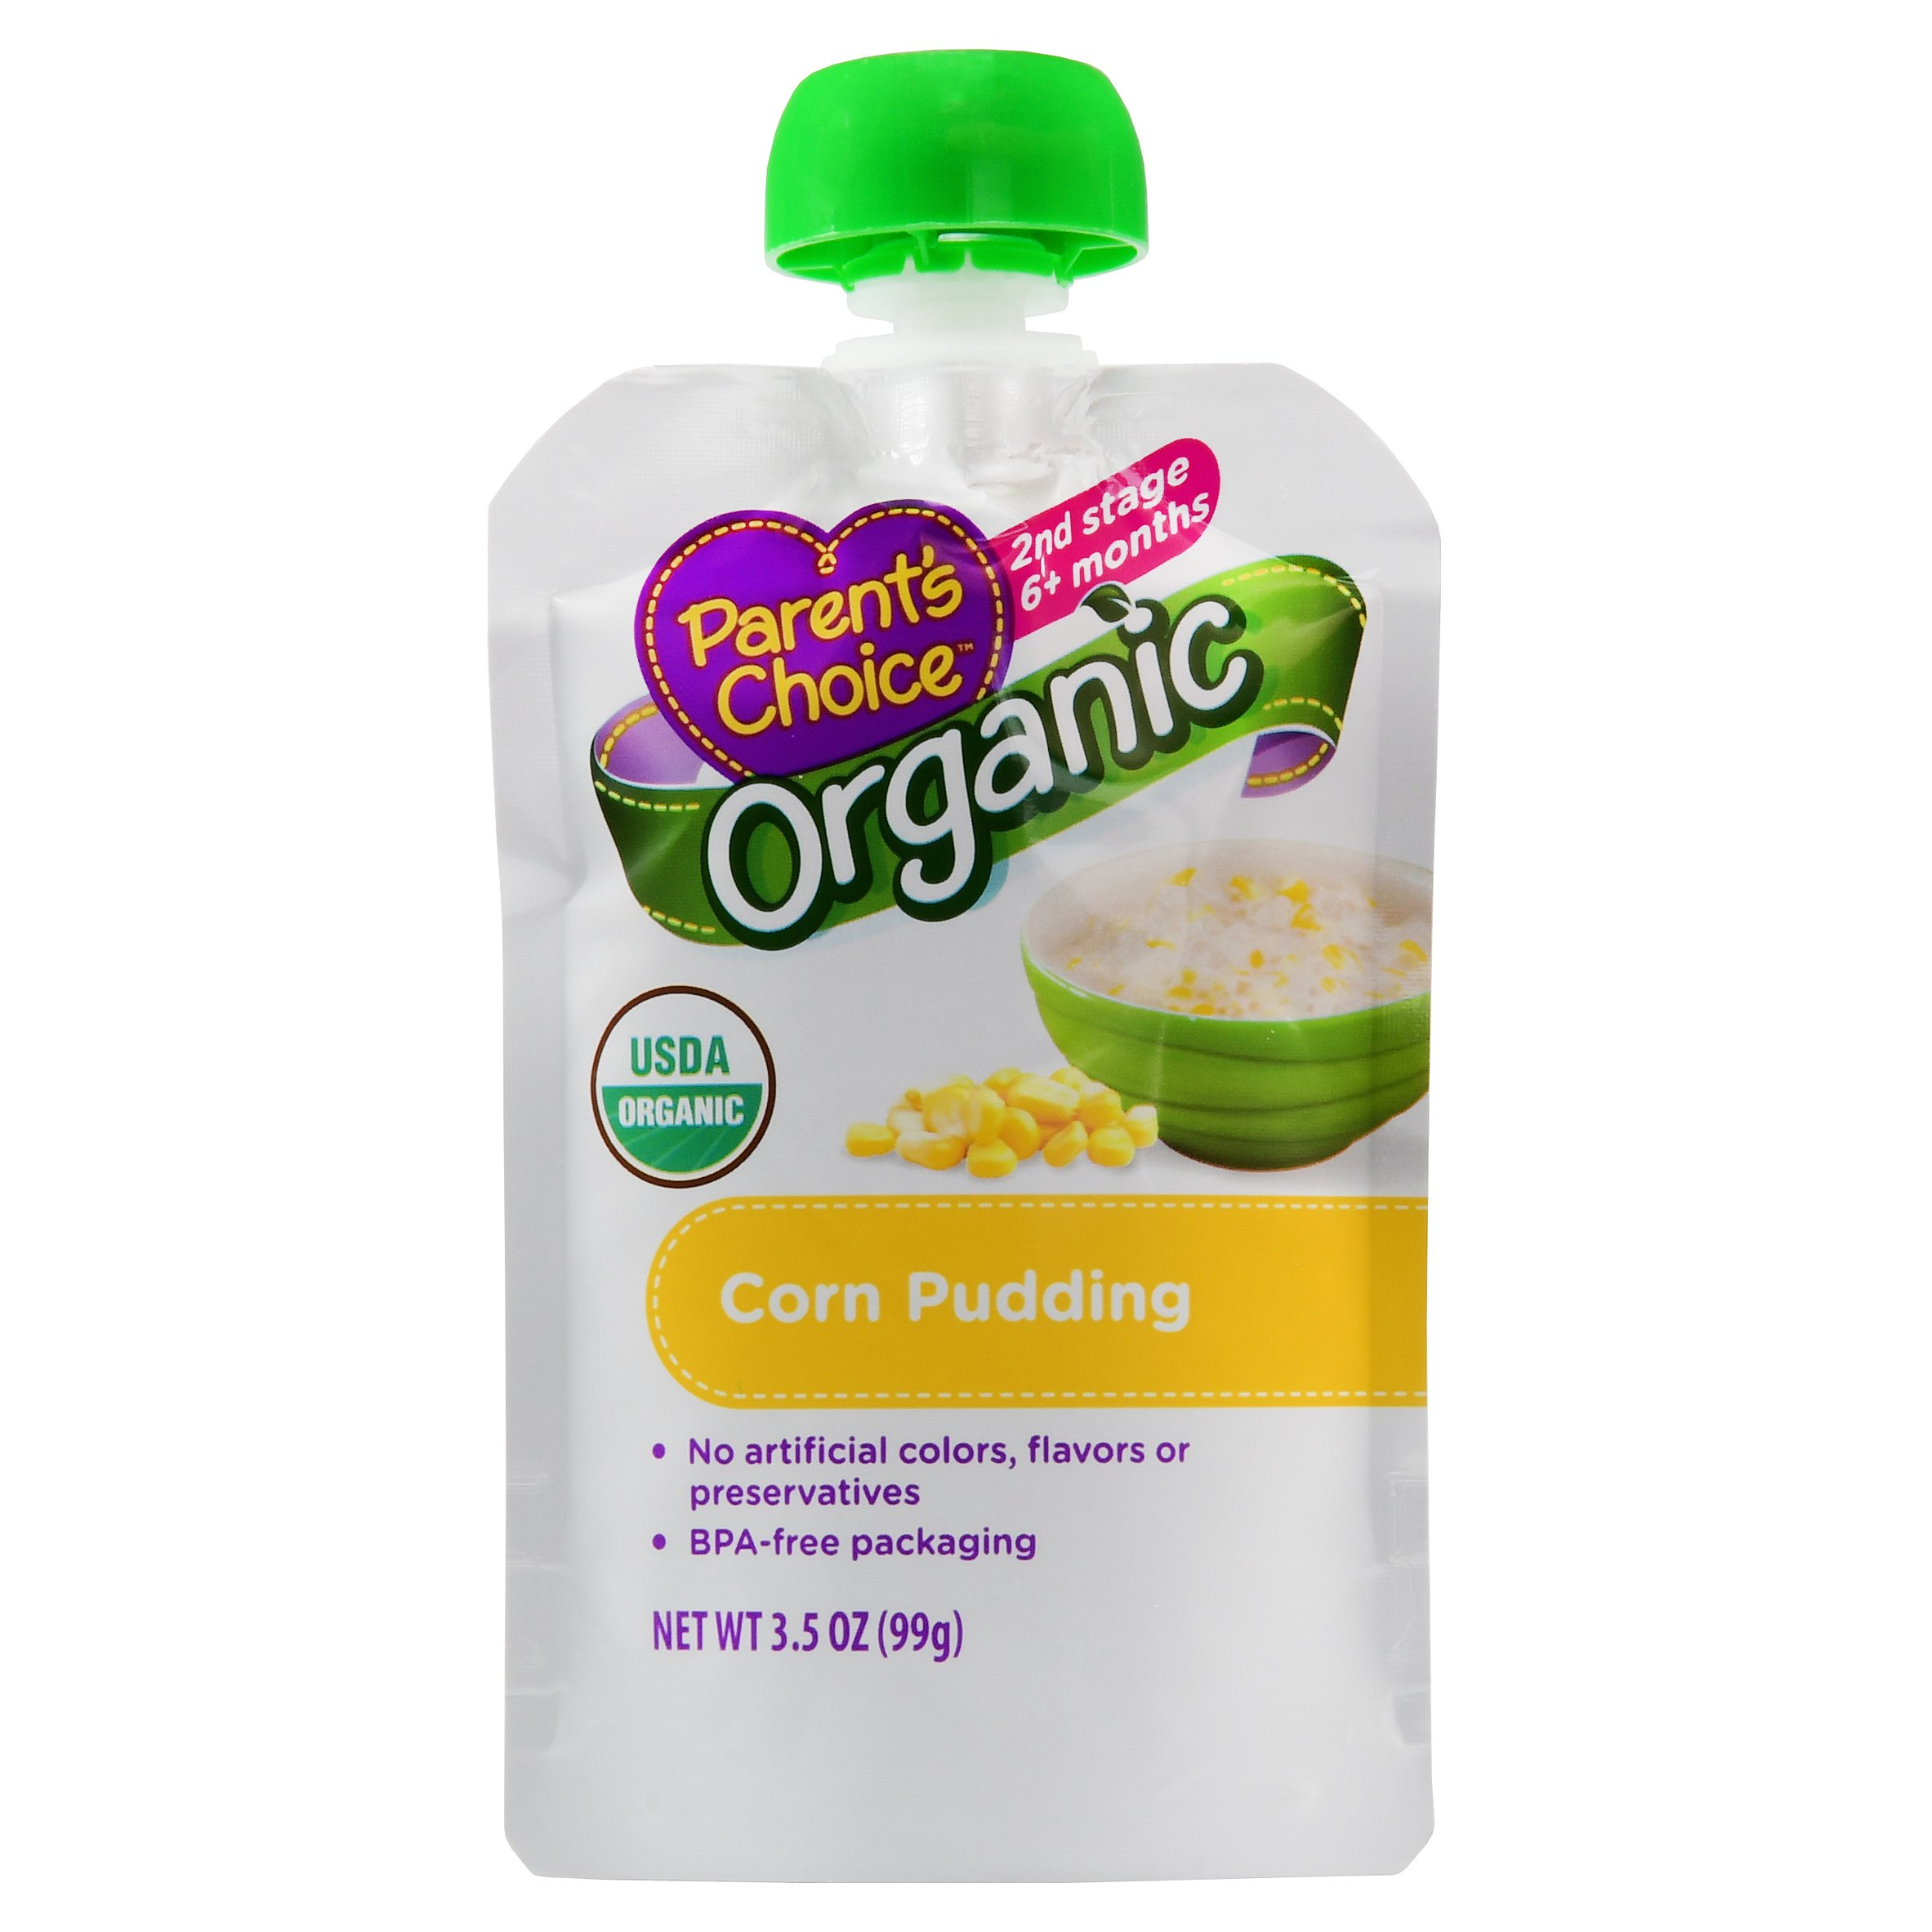 Parent's Choice Baby Food, Stage 2, Organic, Corn Pudding, 3.5oz Pouch